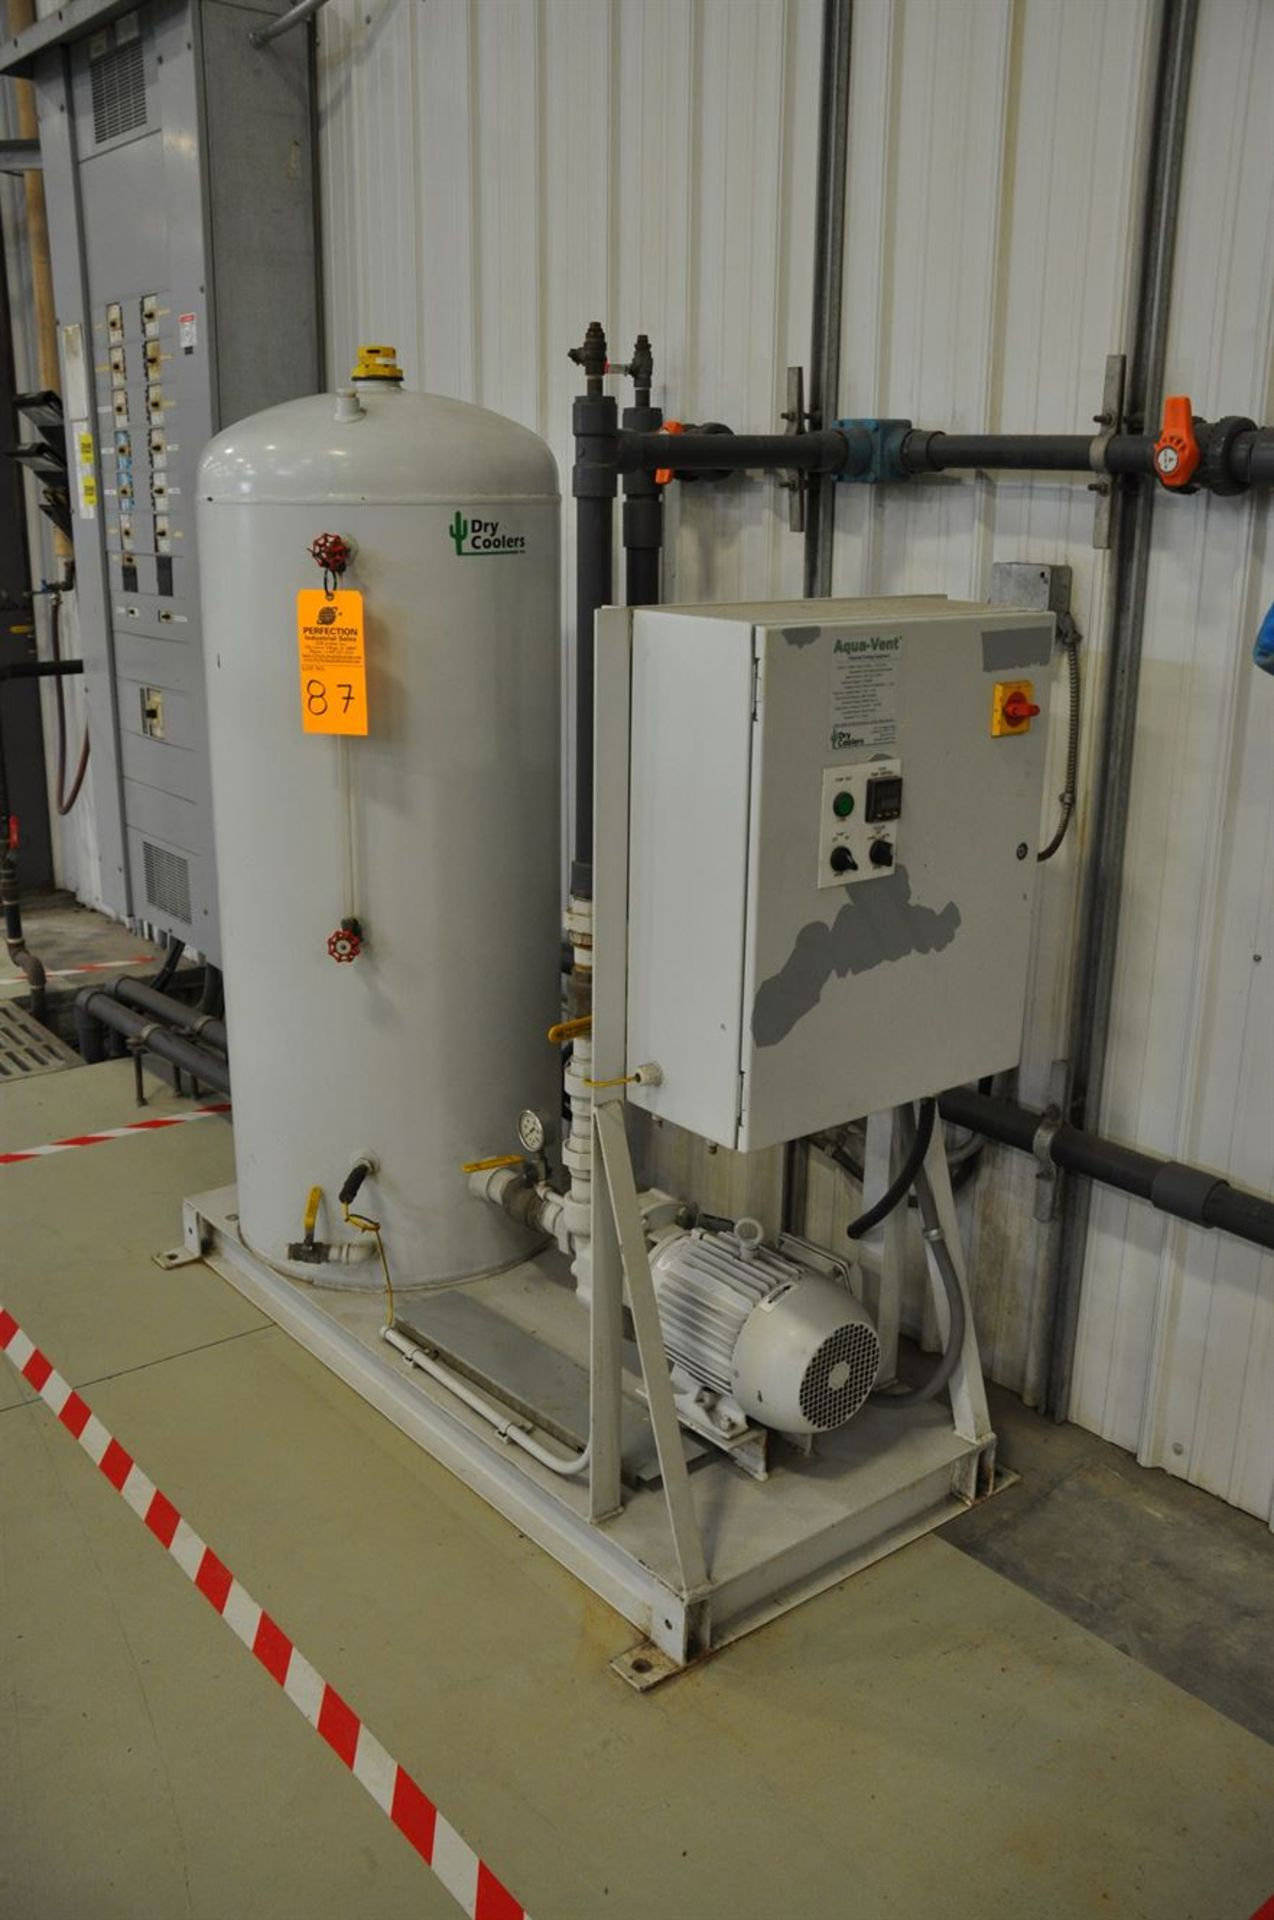 2012 BONE FRONTIER COMPANY CNC TS5L 75 3-10SUM Induction Power Stress Relieving Unit, s/n 730, w/ - Image 5 of 6